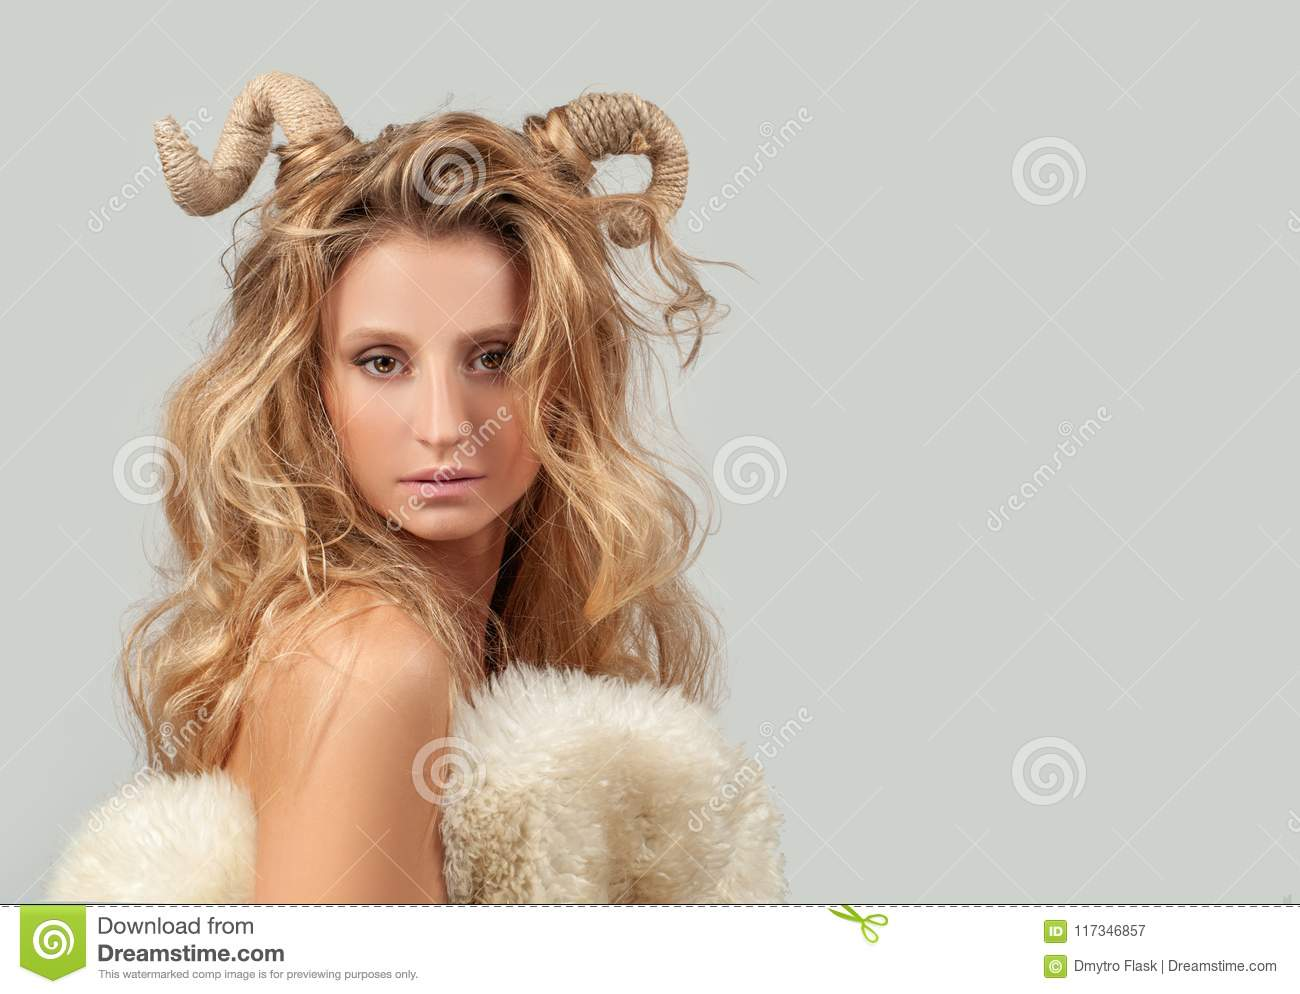 Astrology. Woman Aries Zodiac Sign.